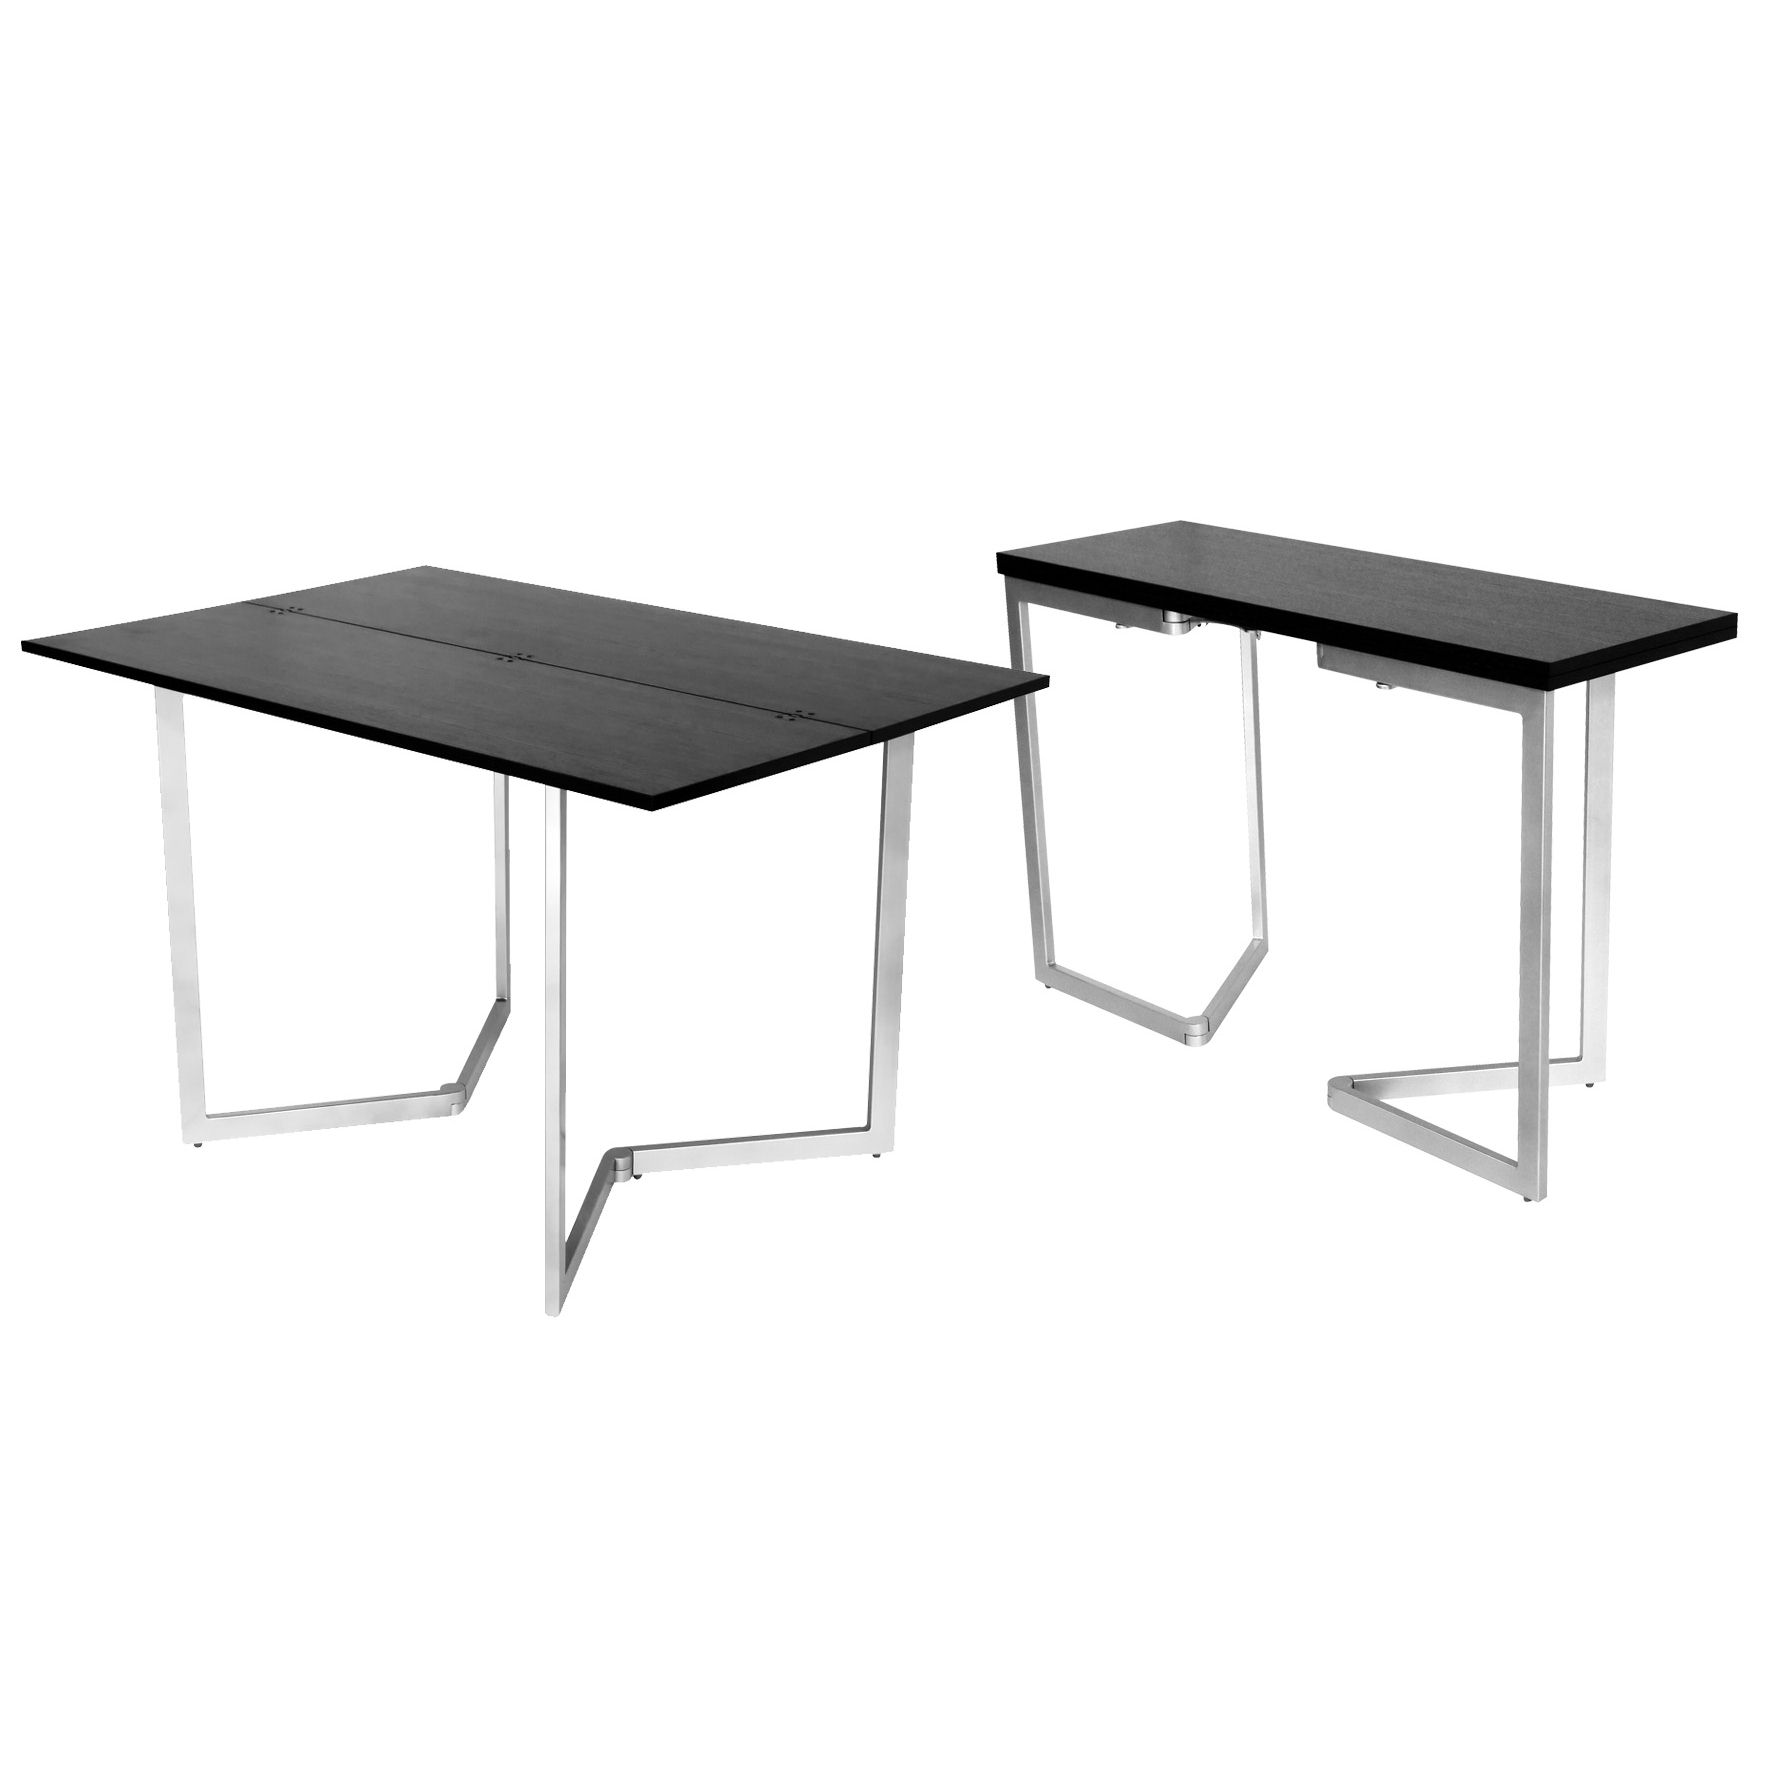 Deco in paris table console extensible wenge talia - Table console extensible fly ...